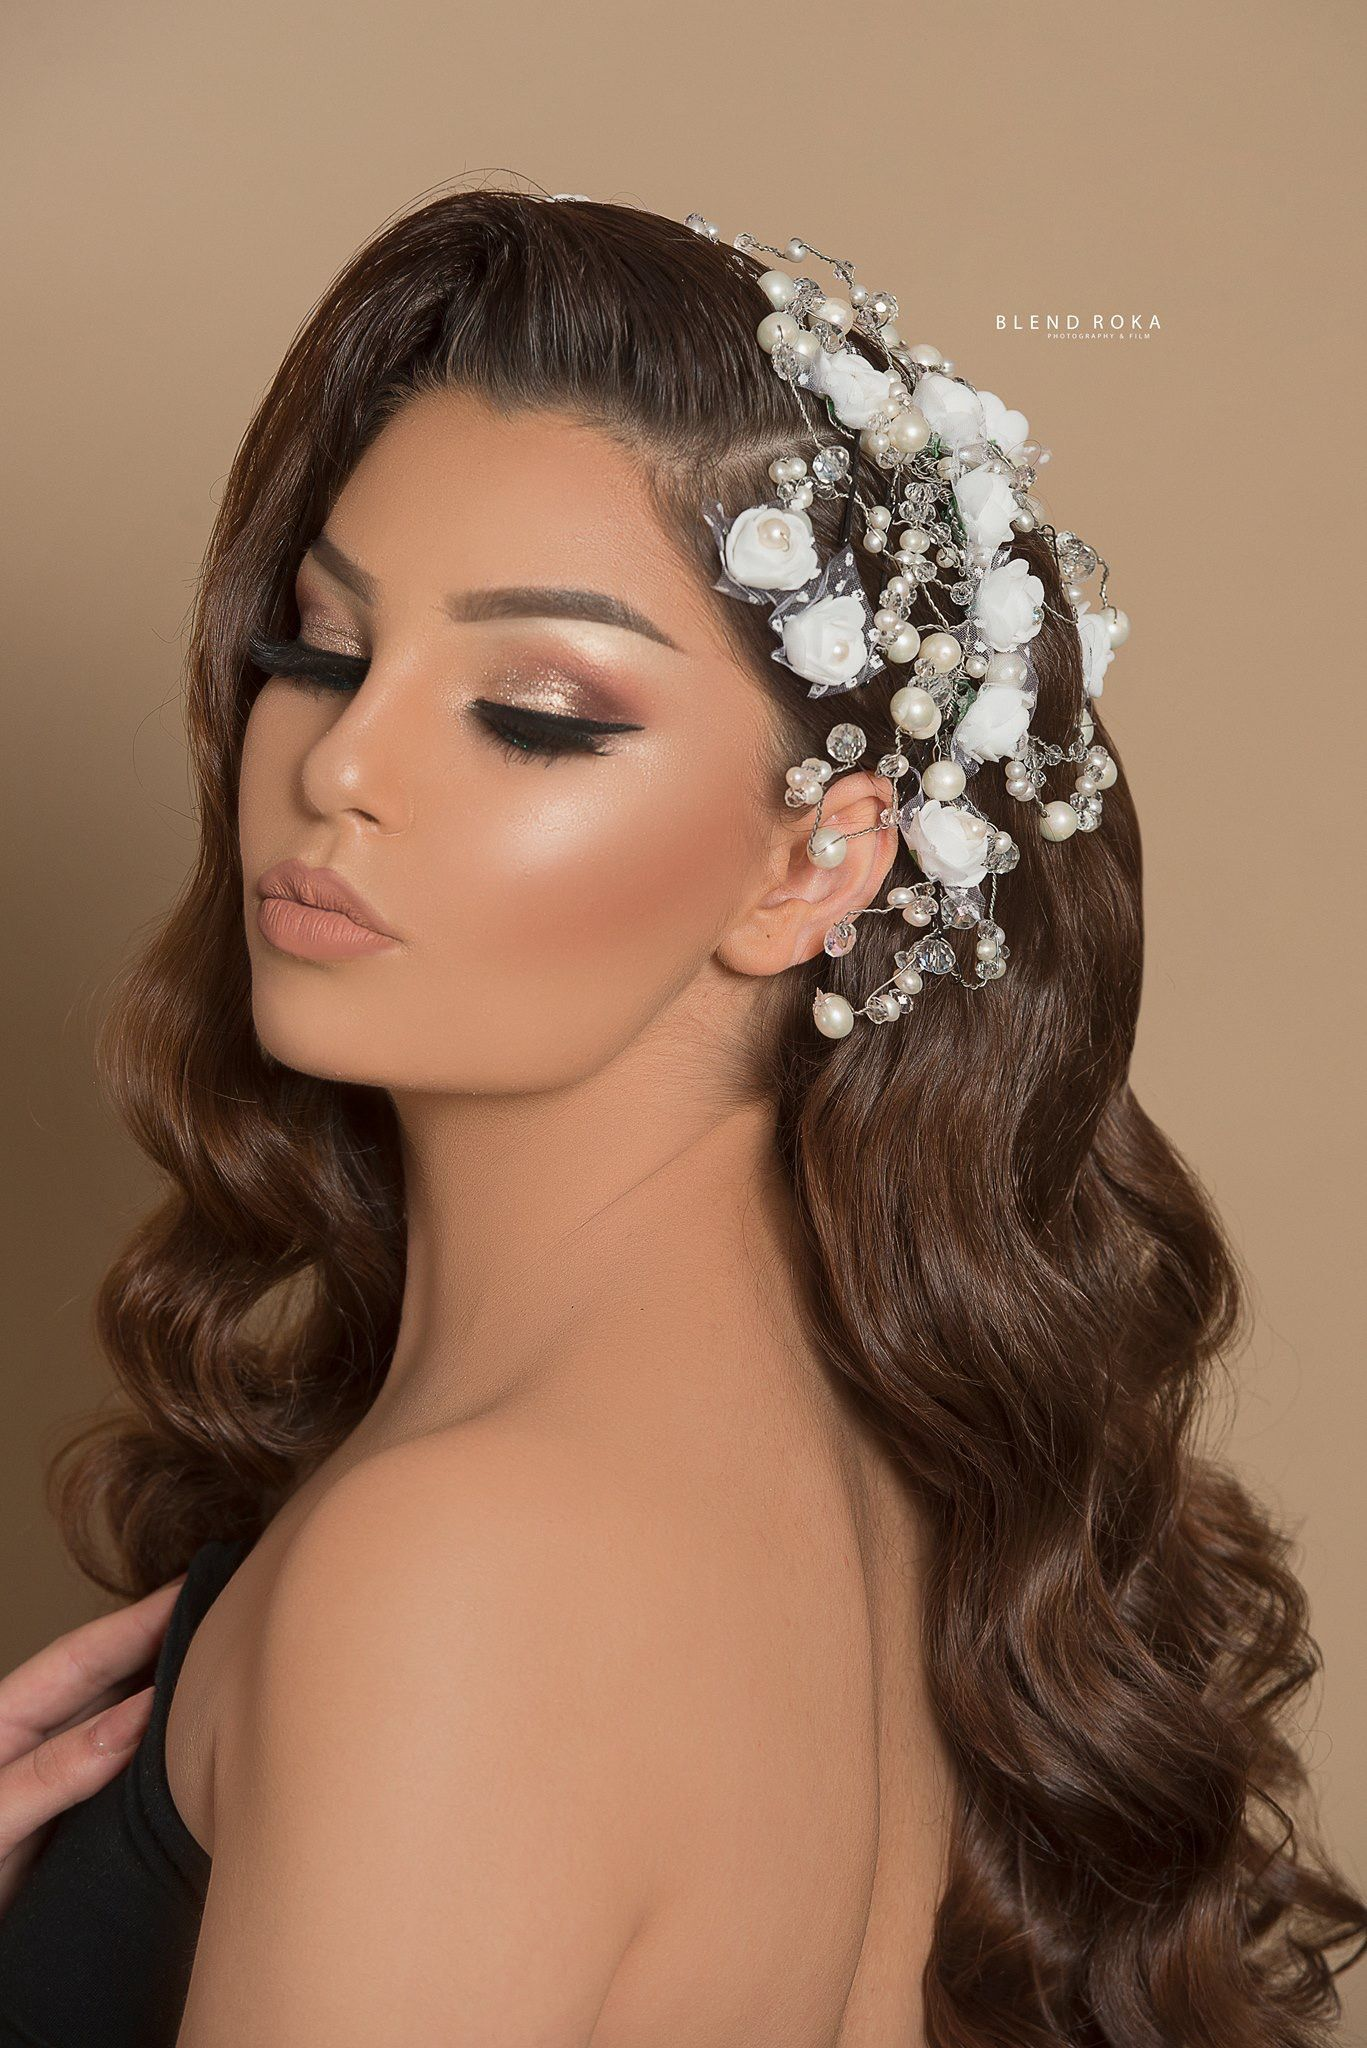 natural wedding day glam💎 | makeup|beauty in 2019 | bride